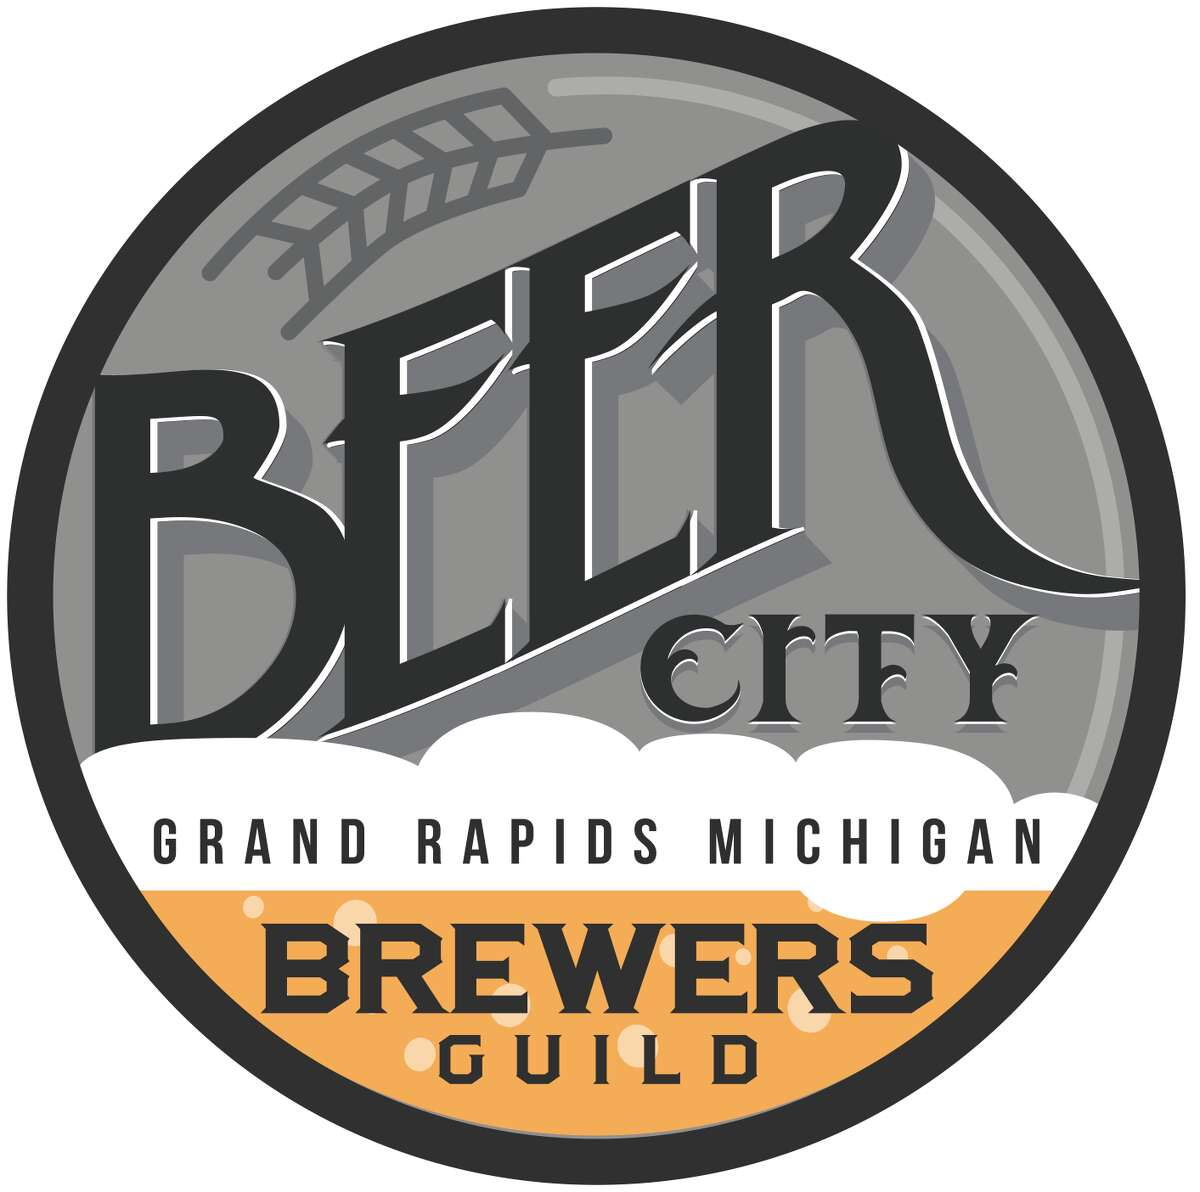 Beer City Brewers Guild announced plans to celebrate the Grand Rapids craft beer scene by hosting Beers at the Calder.